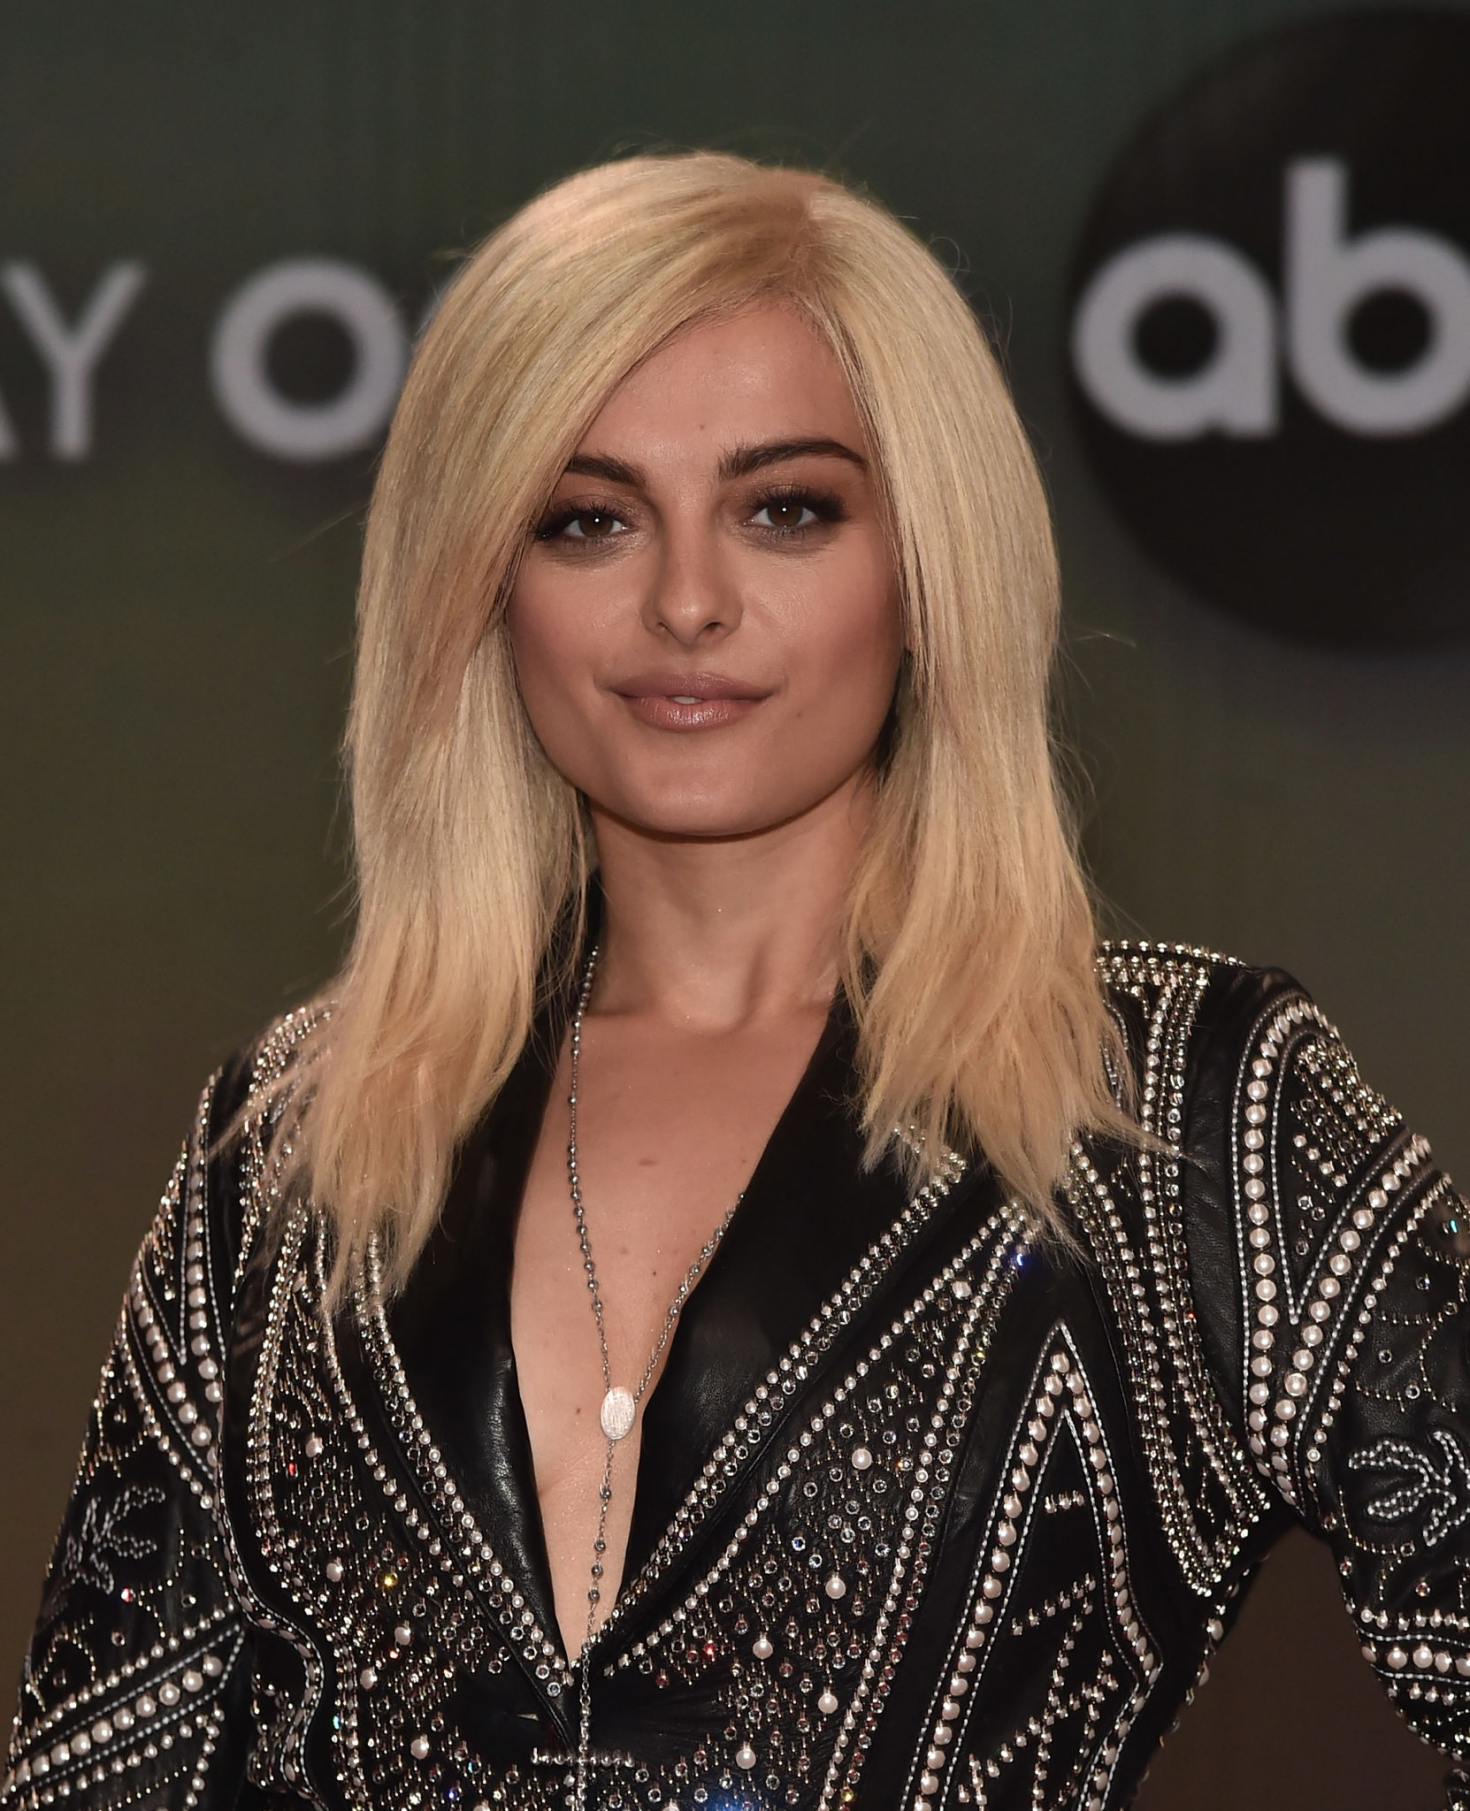 Bebe Rexha 2018 : Bebe Rexha: 2018 American Music Awards Nominations Announcement -12